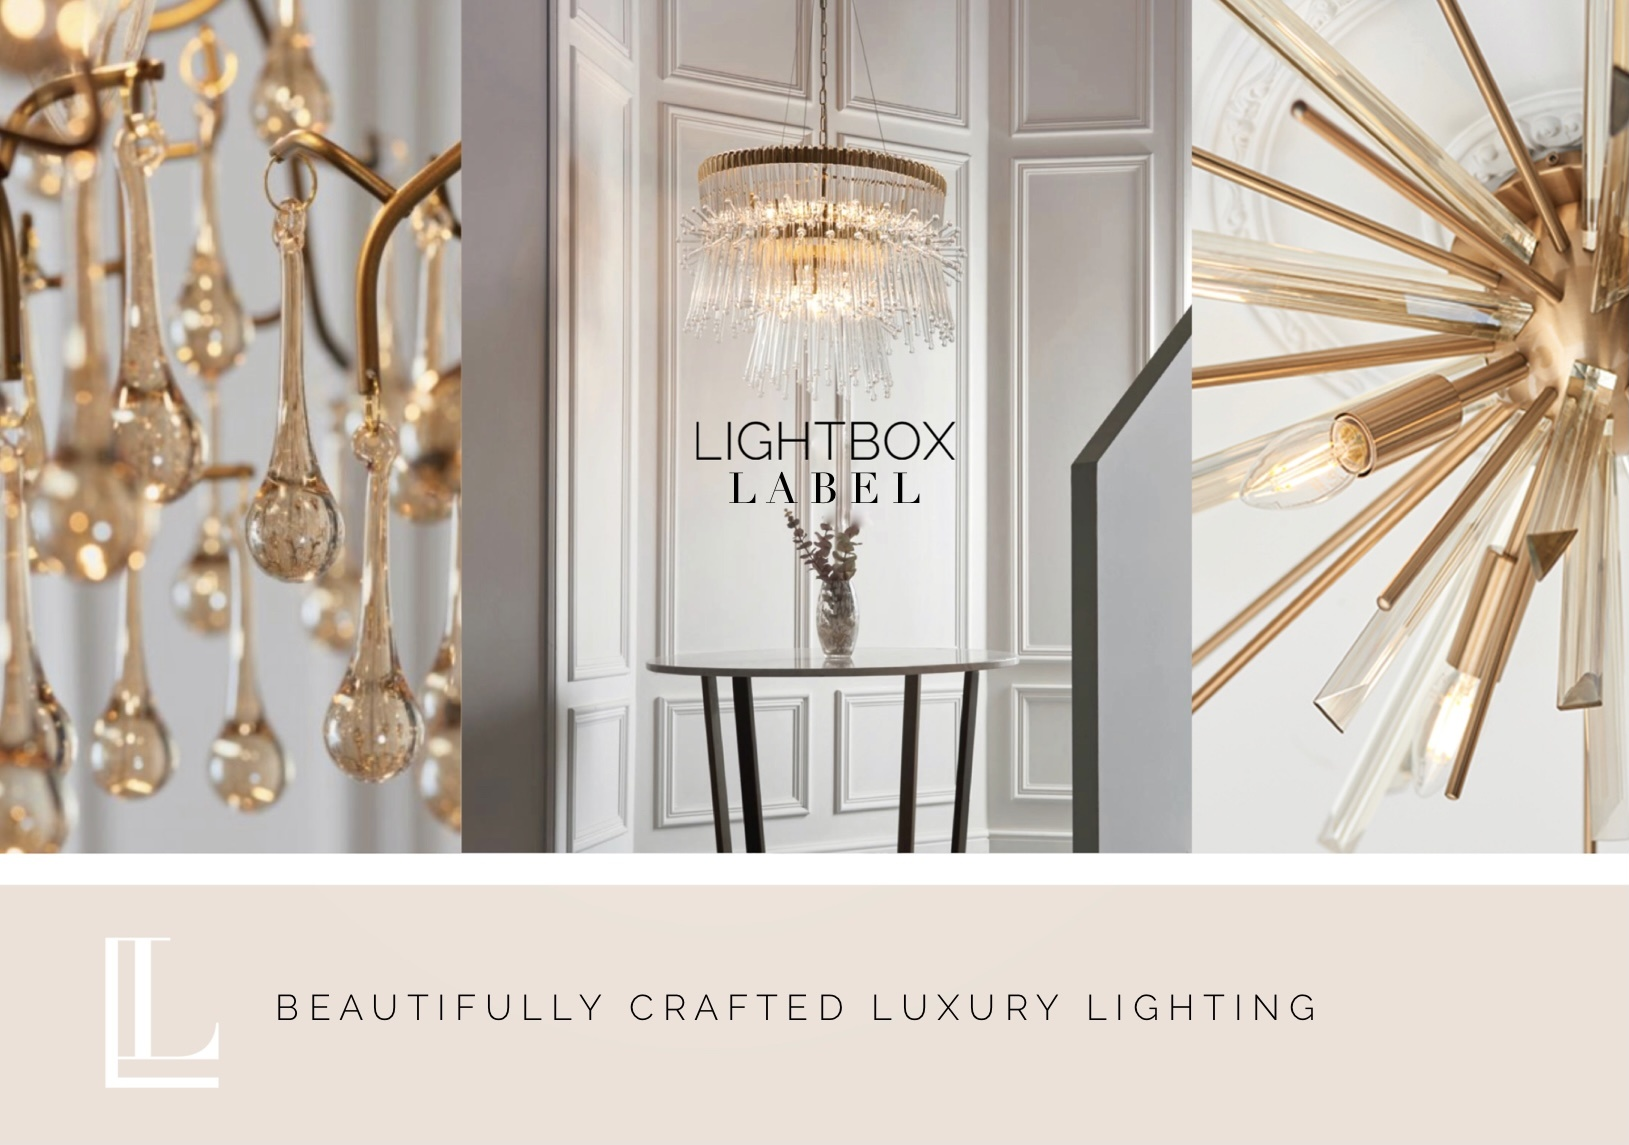 Crystal Lighting uk